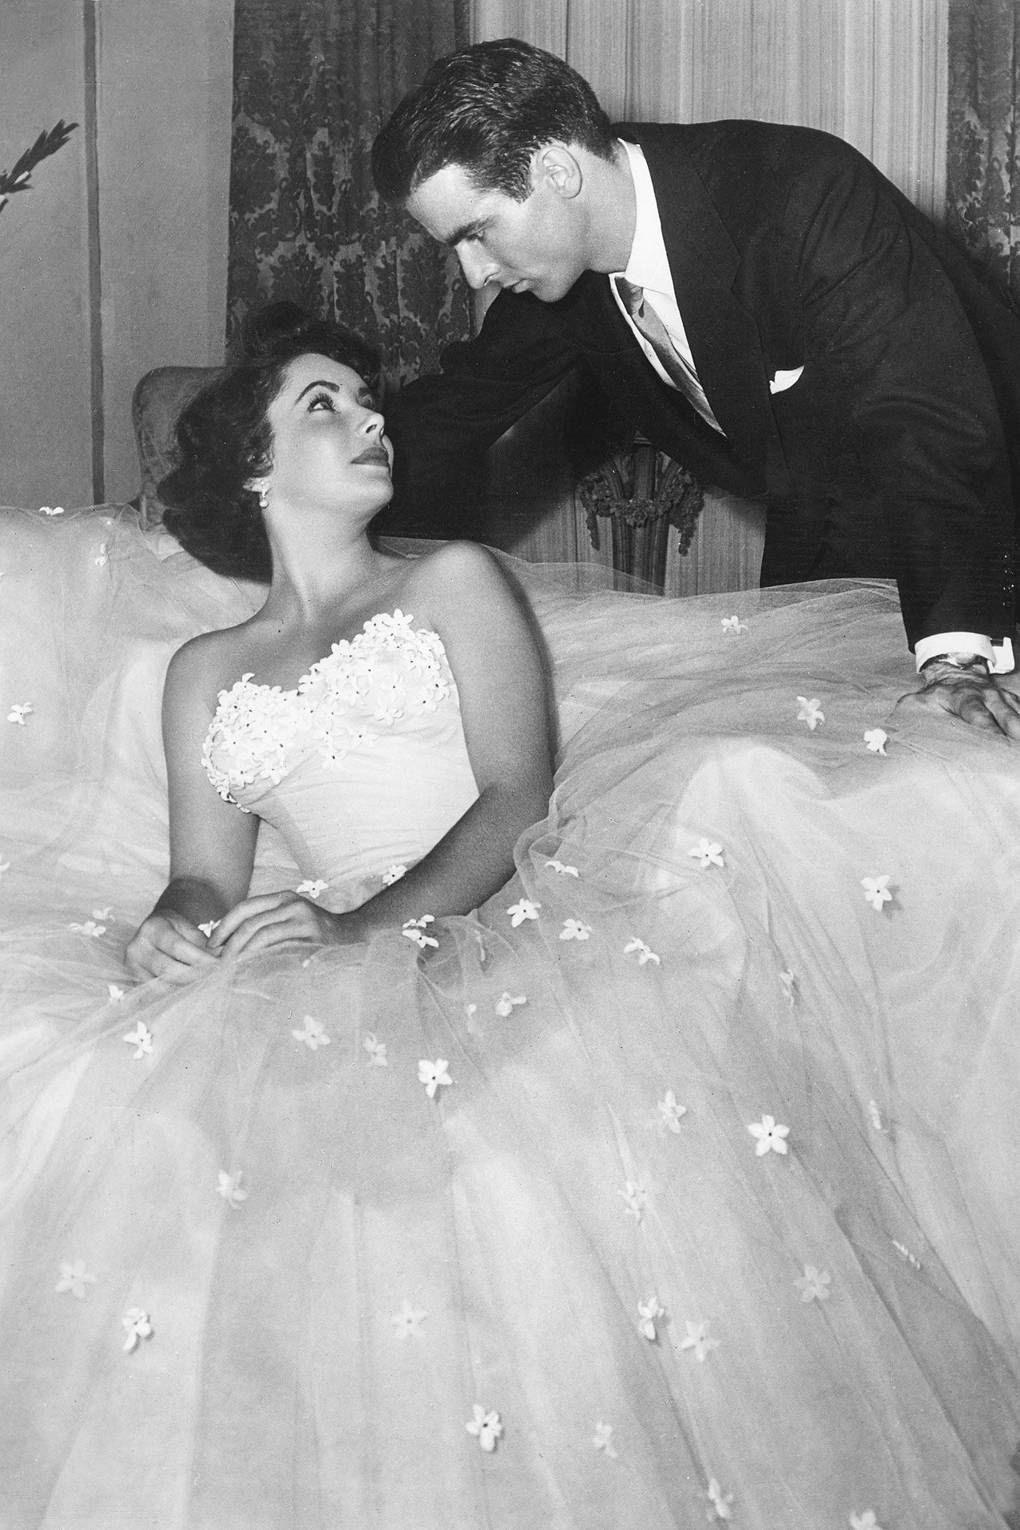 Costume designer Edith Head won one of her eight Academy Awards for costume design by designing the prom-style ball gown worn by Elizabeth Taylor in A Place in the Sun, and, when looking closely at the dress, we can see why. With a fixed bodice and flowing netted skirt, this piece is the definition of iconic.